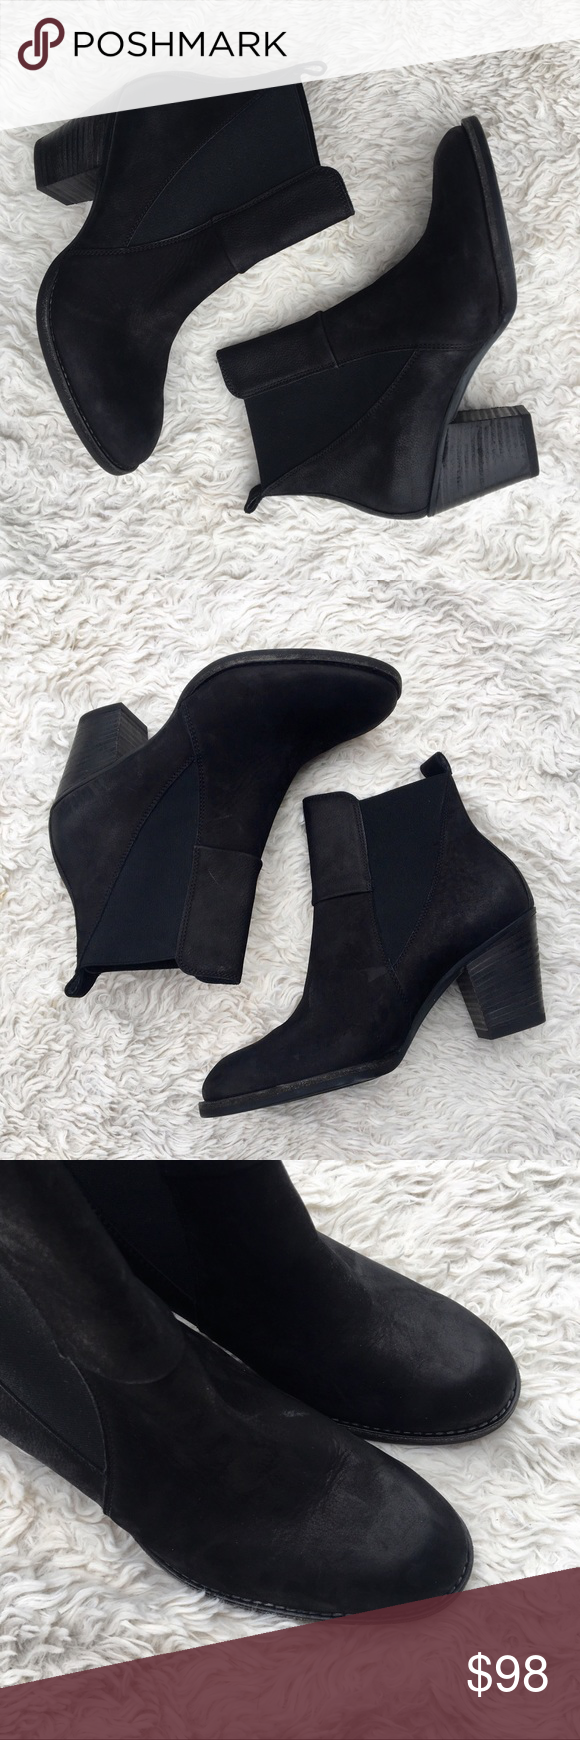 f0e6cd2c6c5b NWOT PAUL GREEN Jules Chelsea Boots Oiled leather pull-on Chelsea booties.  These are